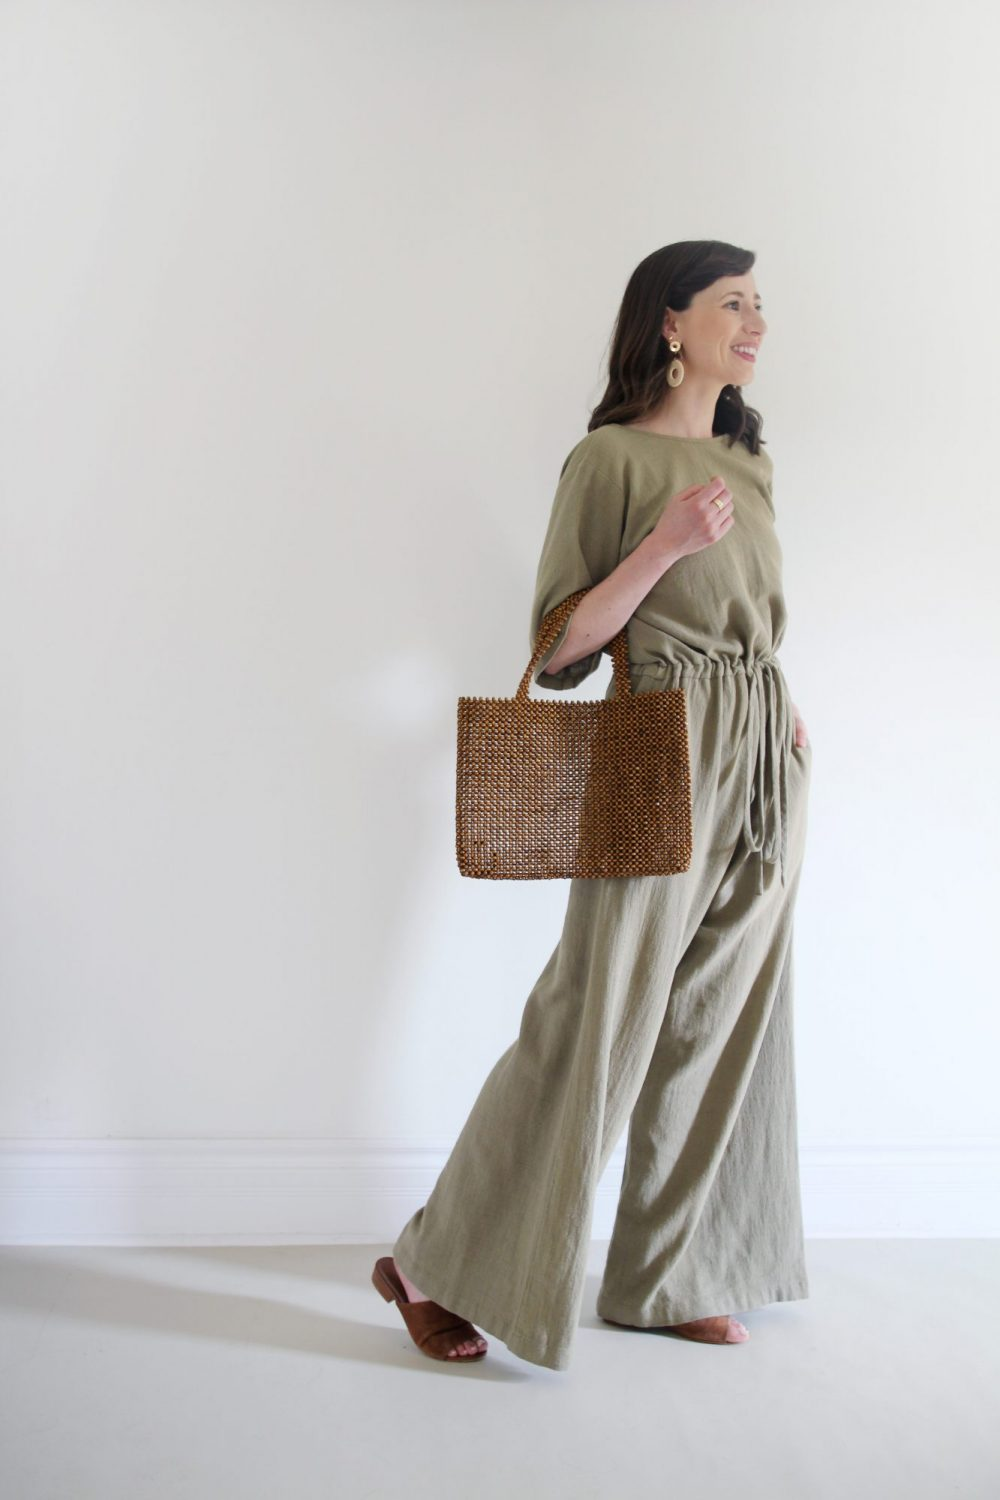 Style Bee - August Outfits - Look 3 - Duffy Jumpsuit + Suede Slides + Beaded Bag + Woven Earrings